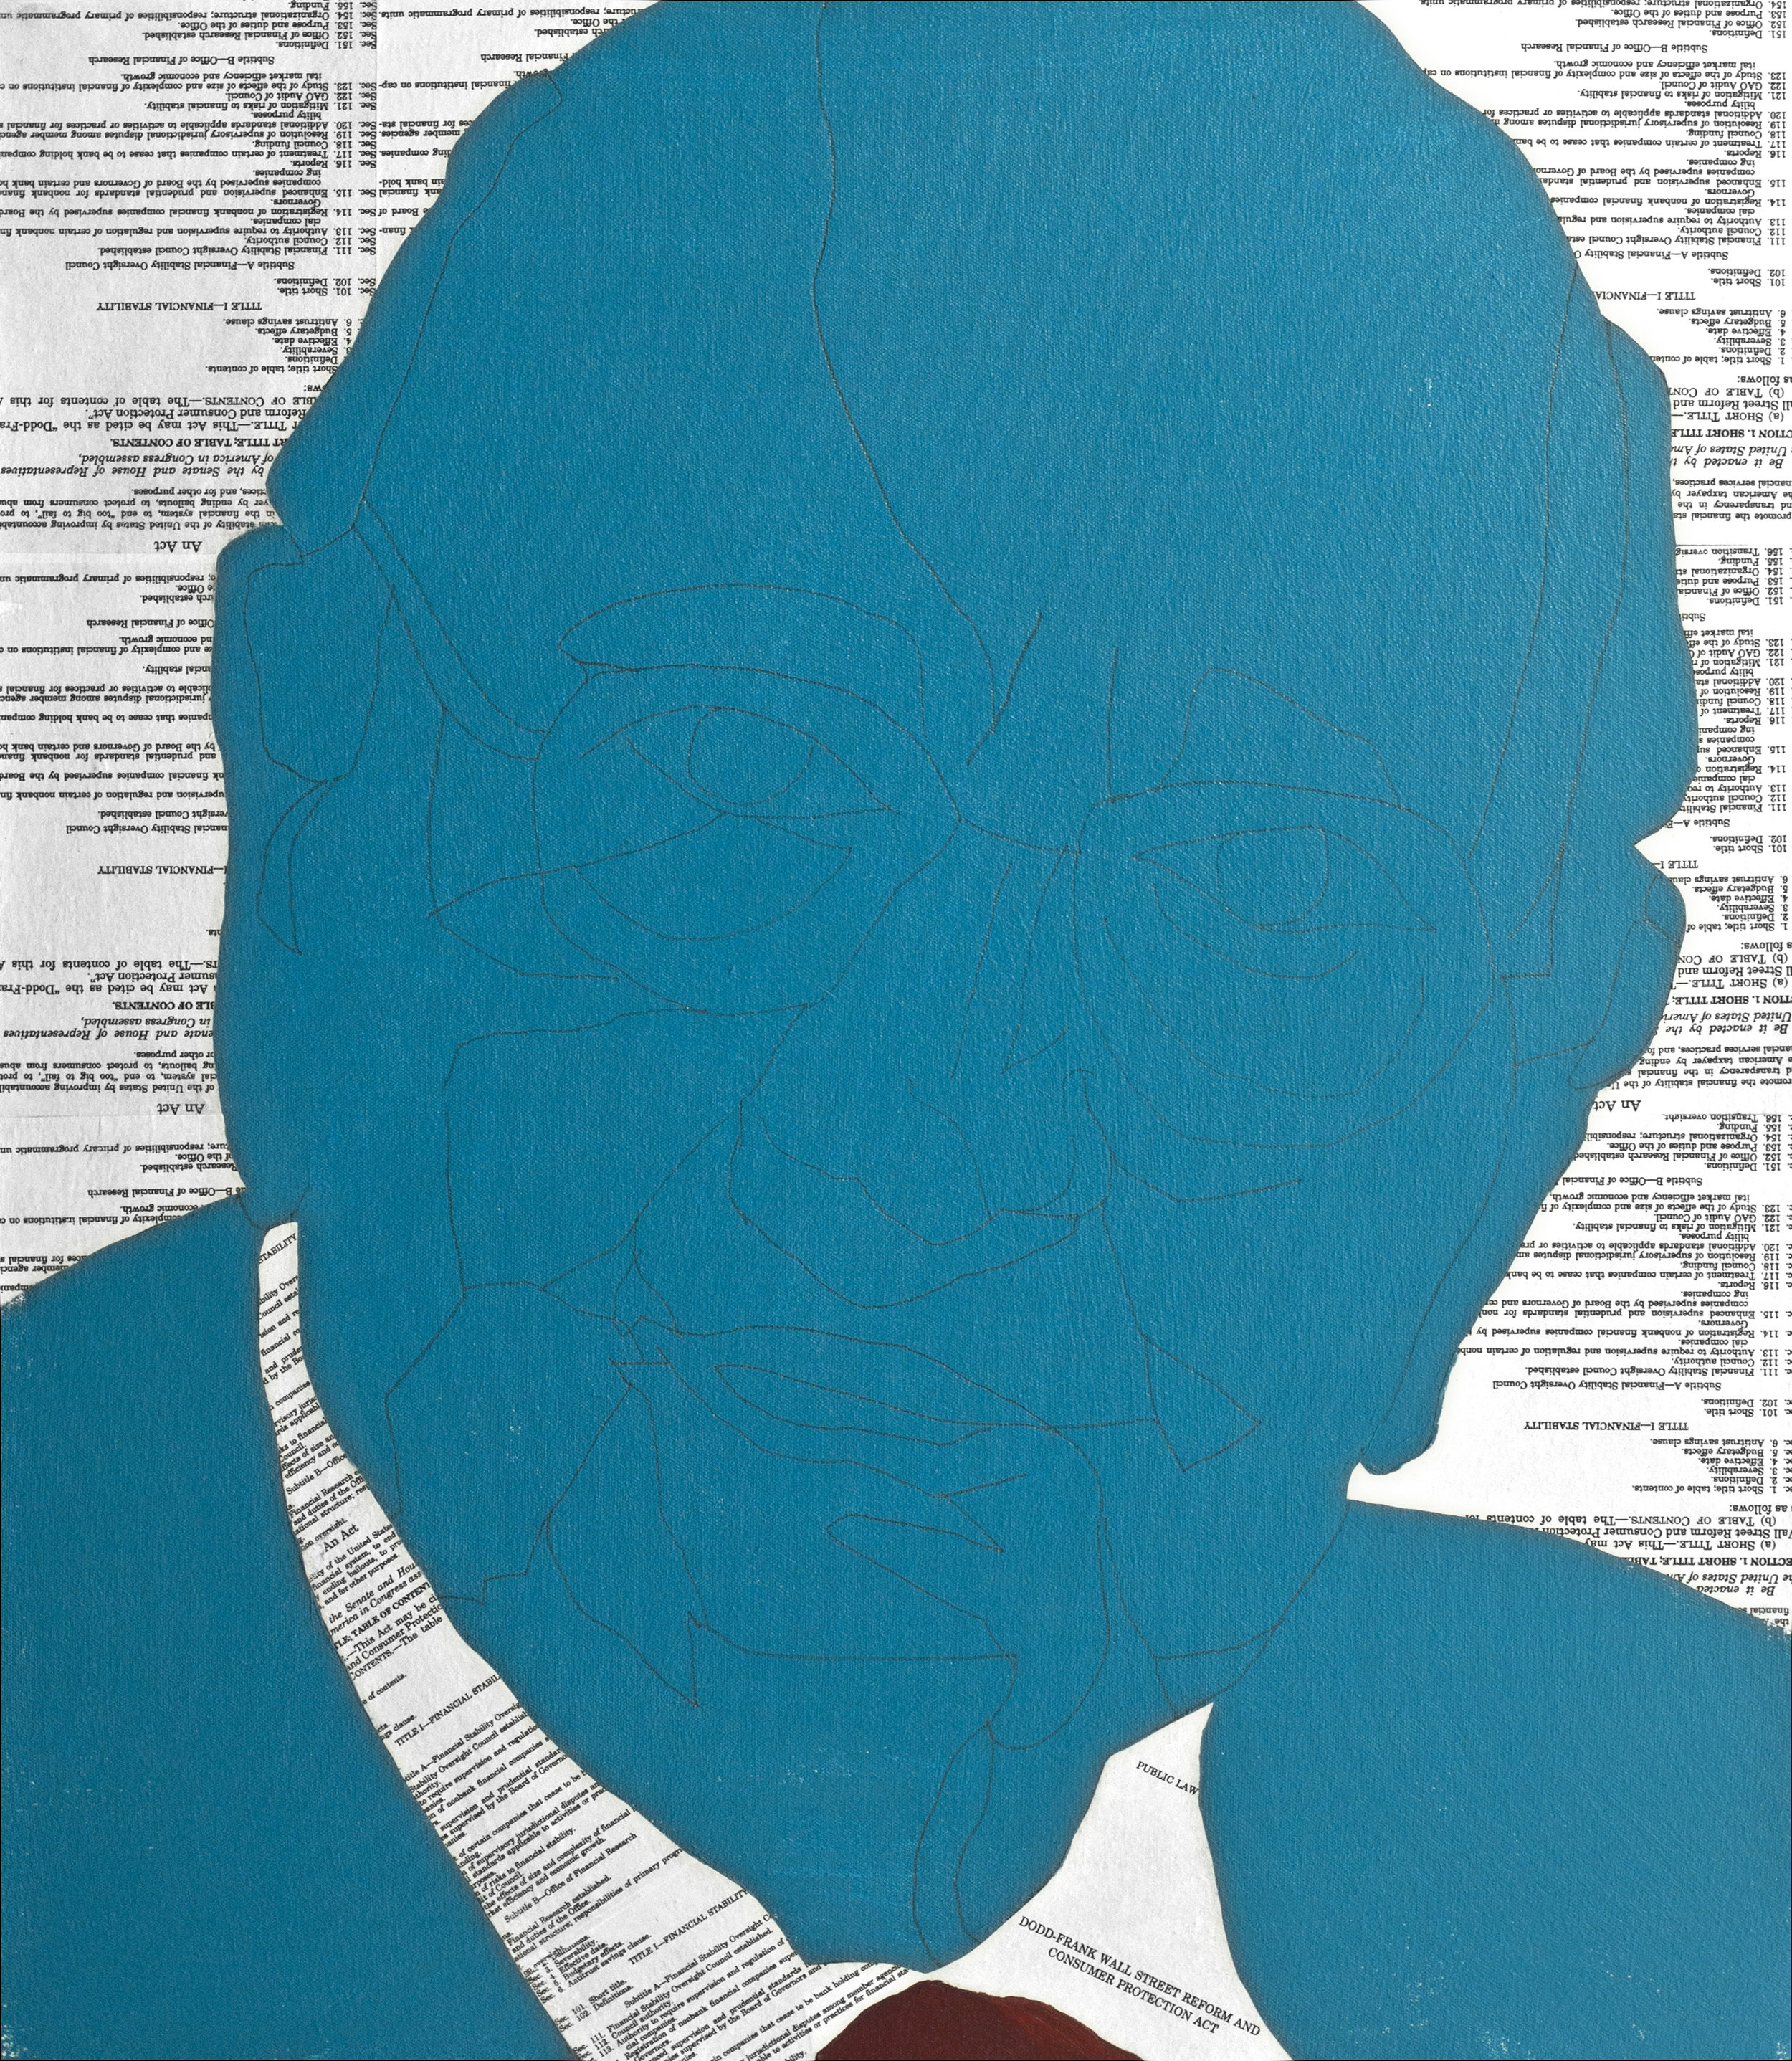 Volcker Too  Pencil, acrylic and collage material from the Volcker Rule section of the Dodd Frank Act on canvas, 30 x 26 inches, 2014  Inquire